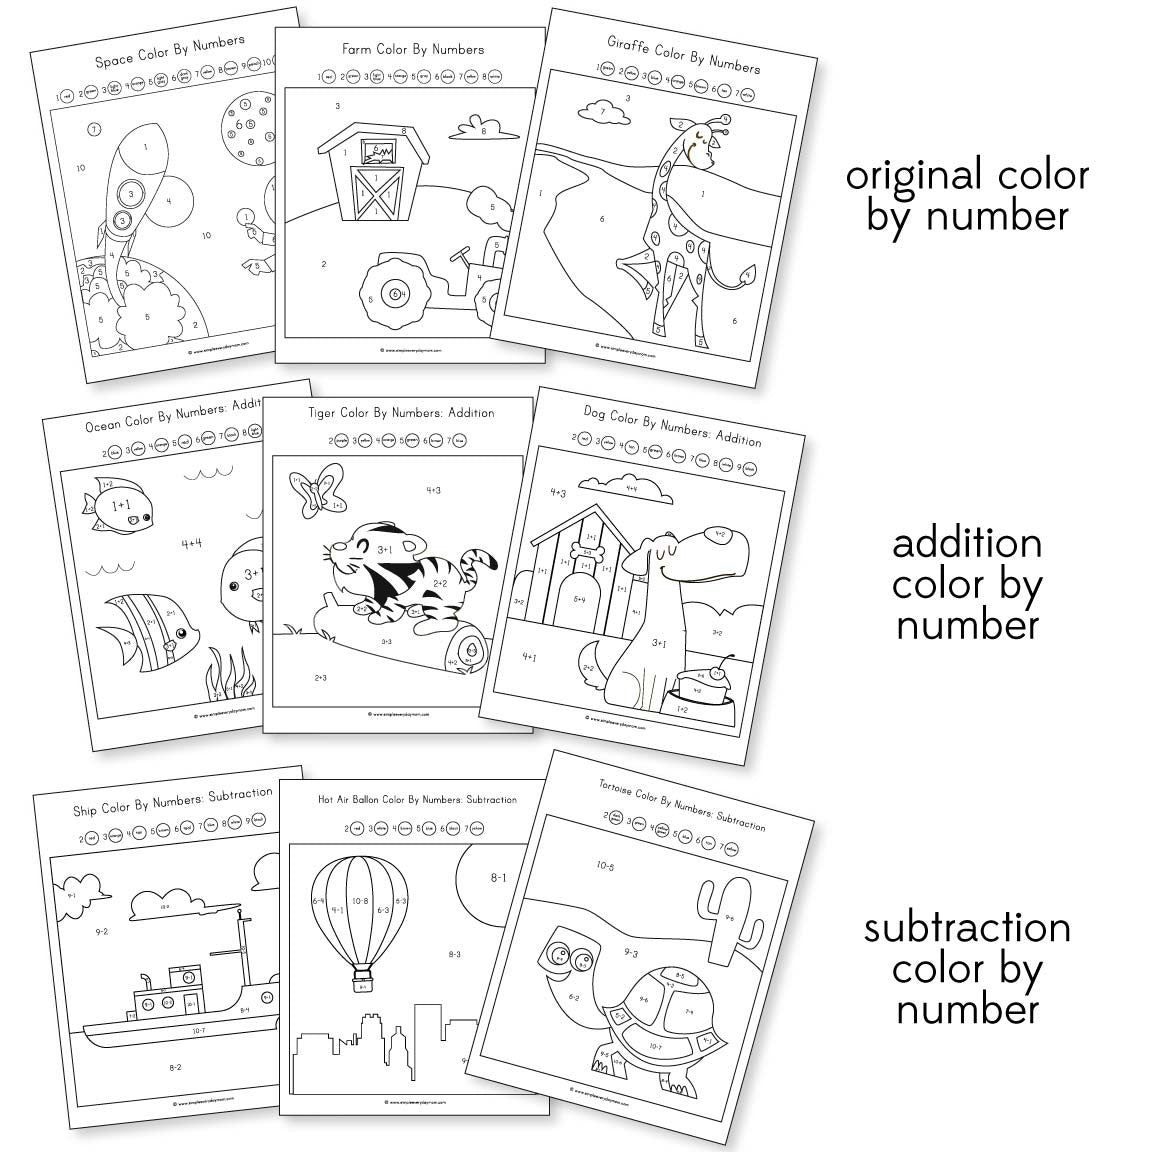 9 fun color by number worksheets that teach math the easy way